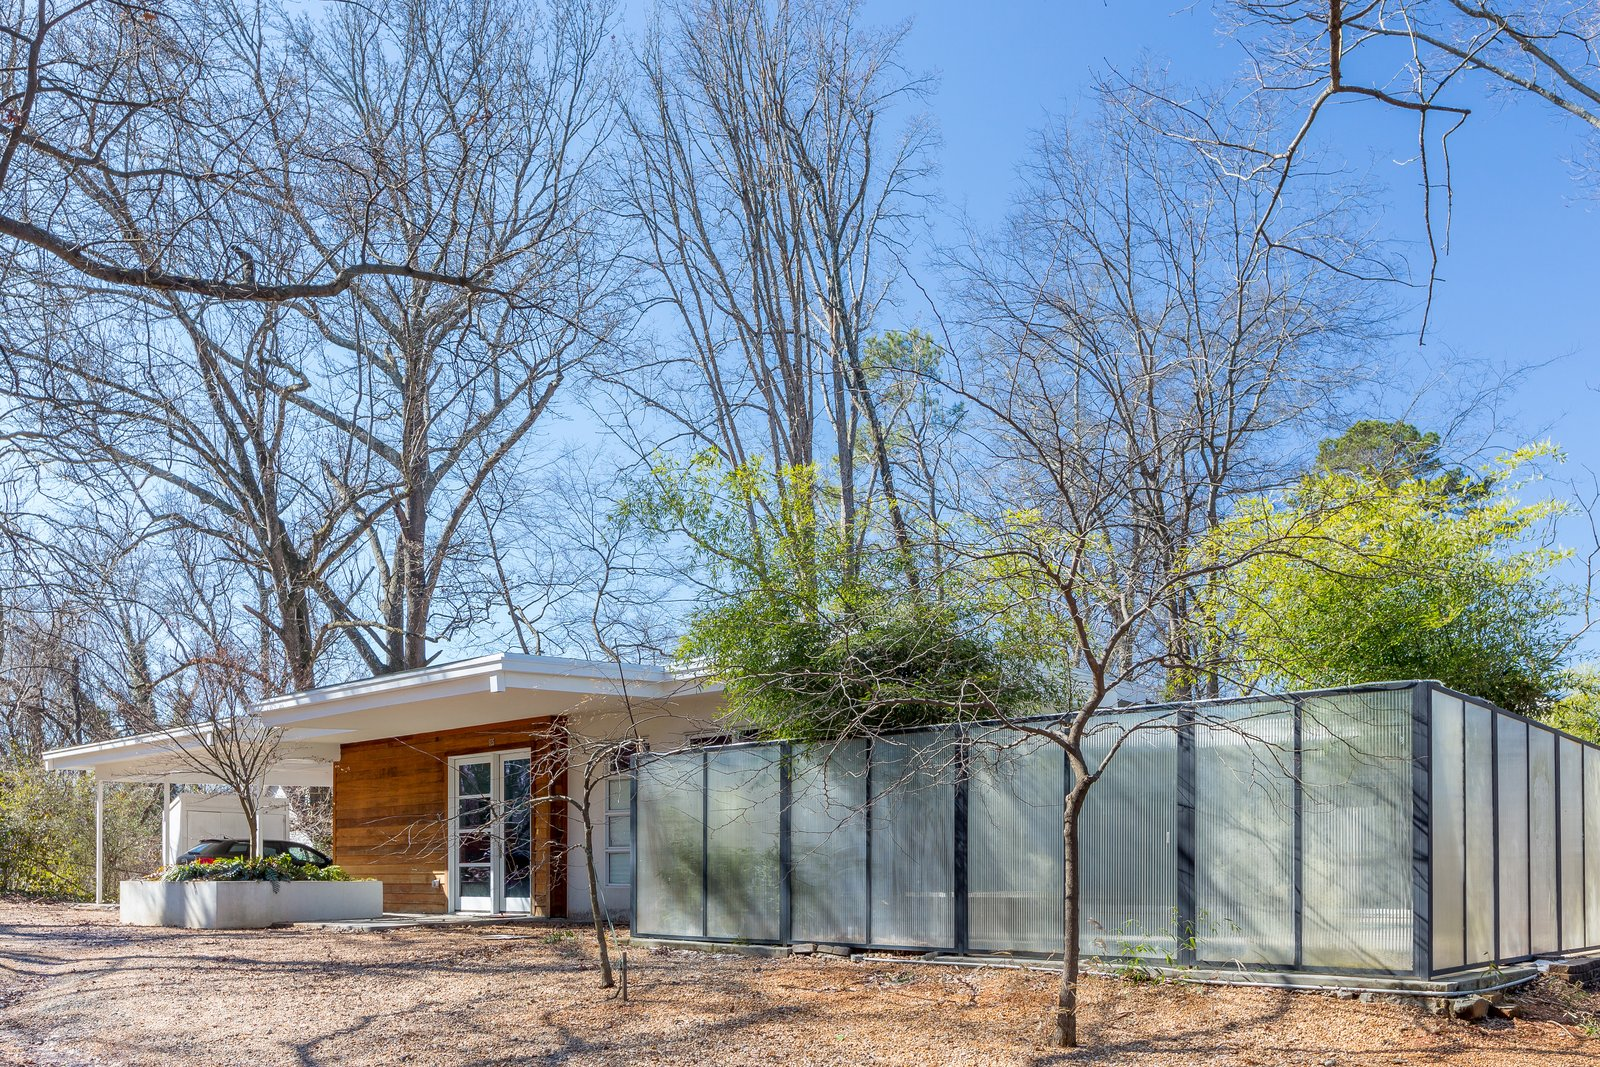 Entry & Carport Tagged: Exterior, House, Wood Siding Material, and Stucco Siding Material. Custer by TaC studios